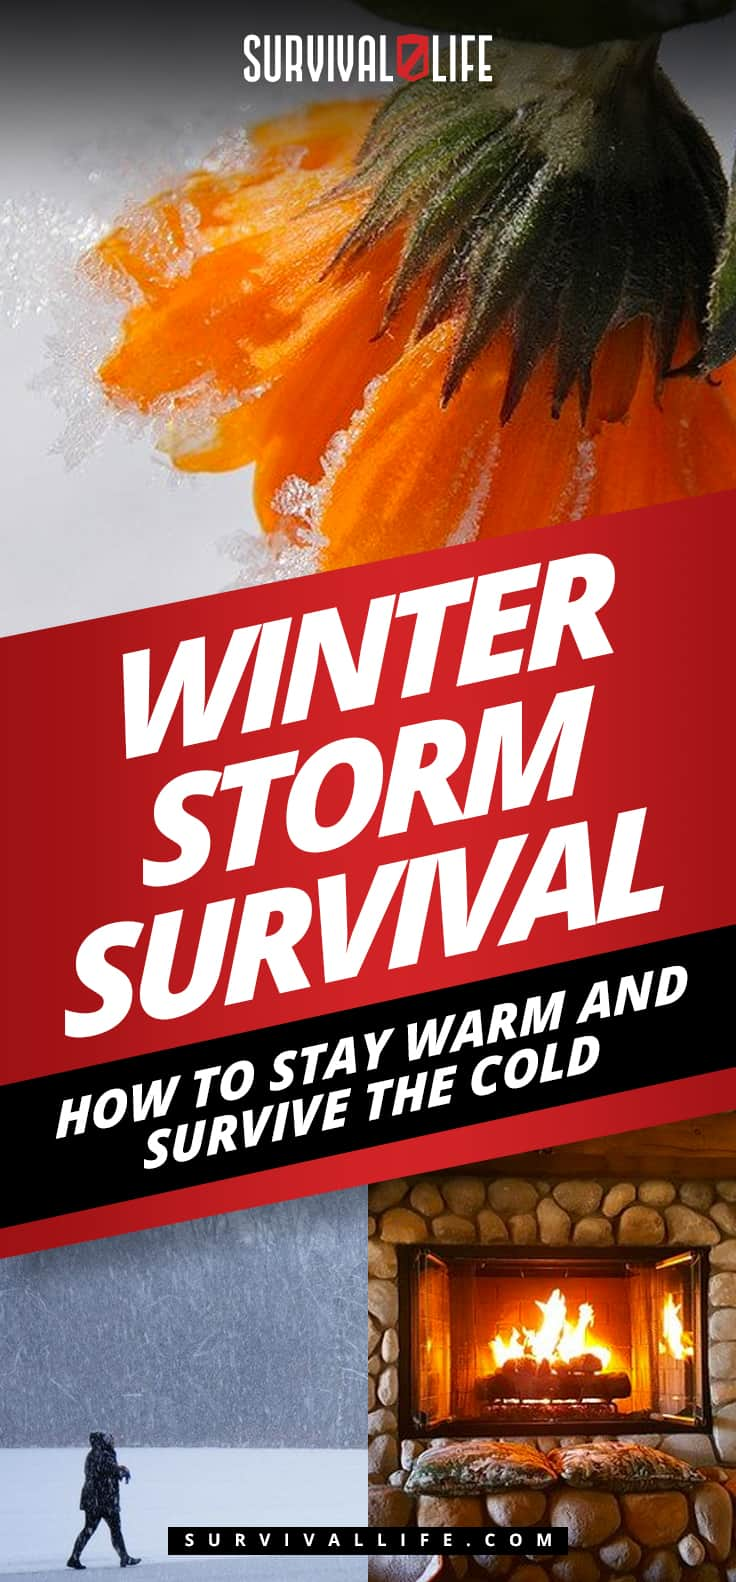 Winter Storm Survival: How To Stay Warm And Survive The Cold | https://survivallife.com/winter-storms-how-to-survive/